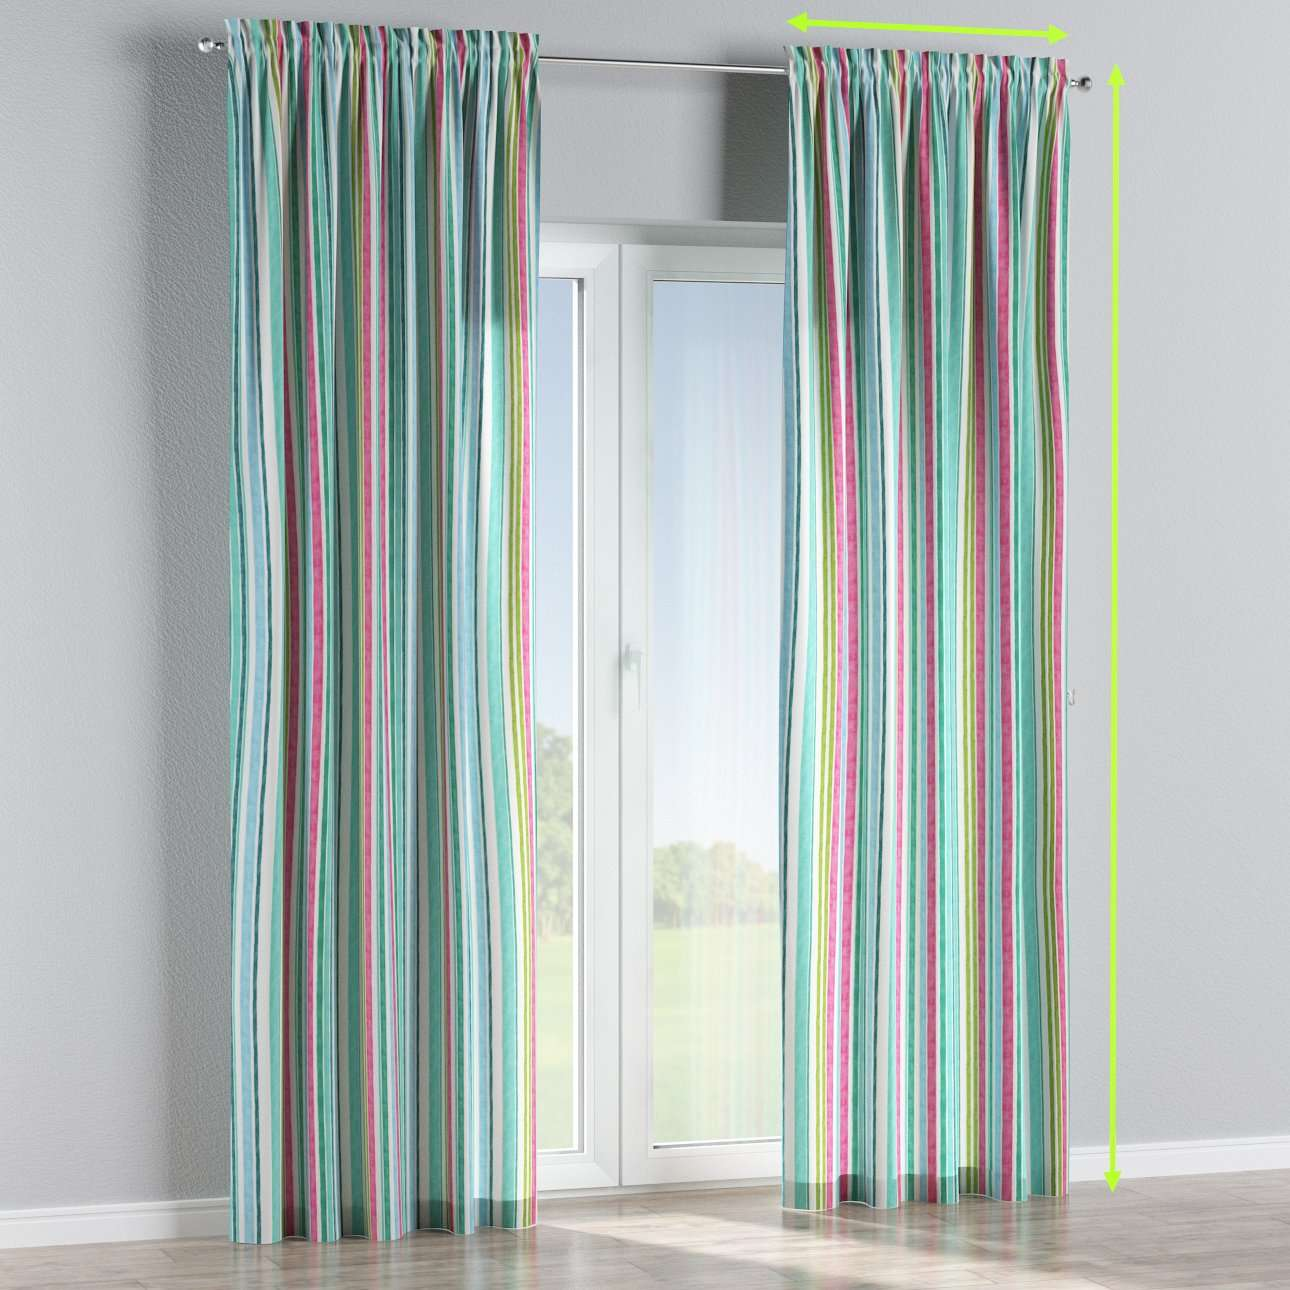 Slot and frill curtains in collection Monet, fabric: 140-03